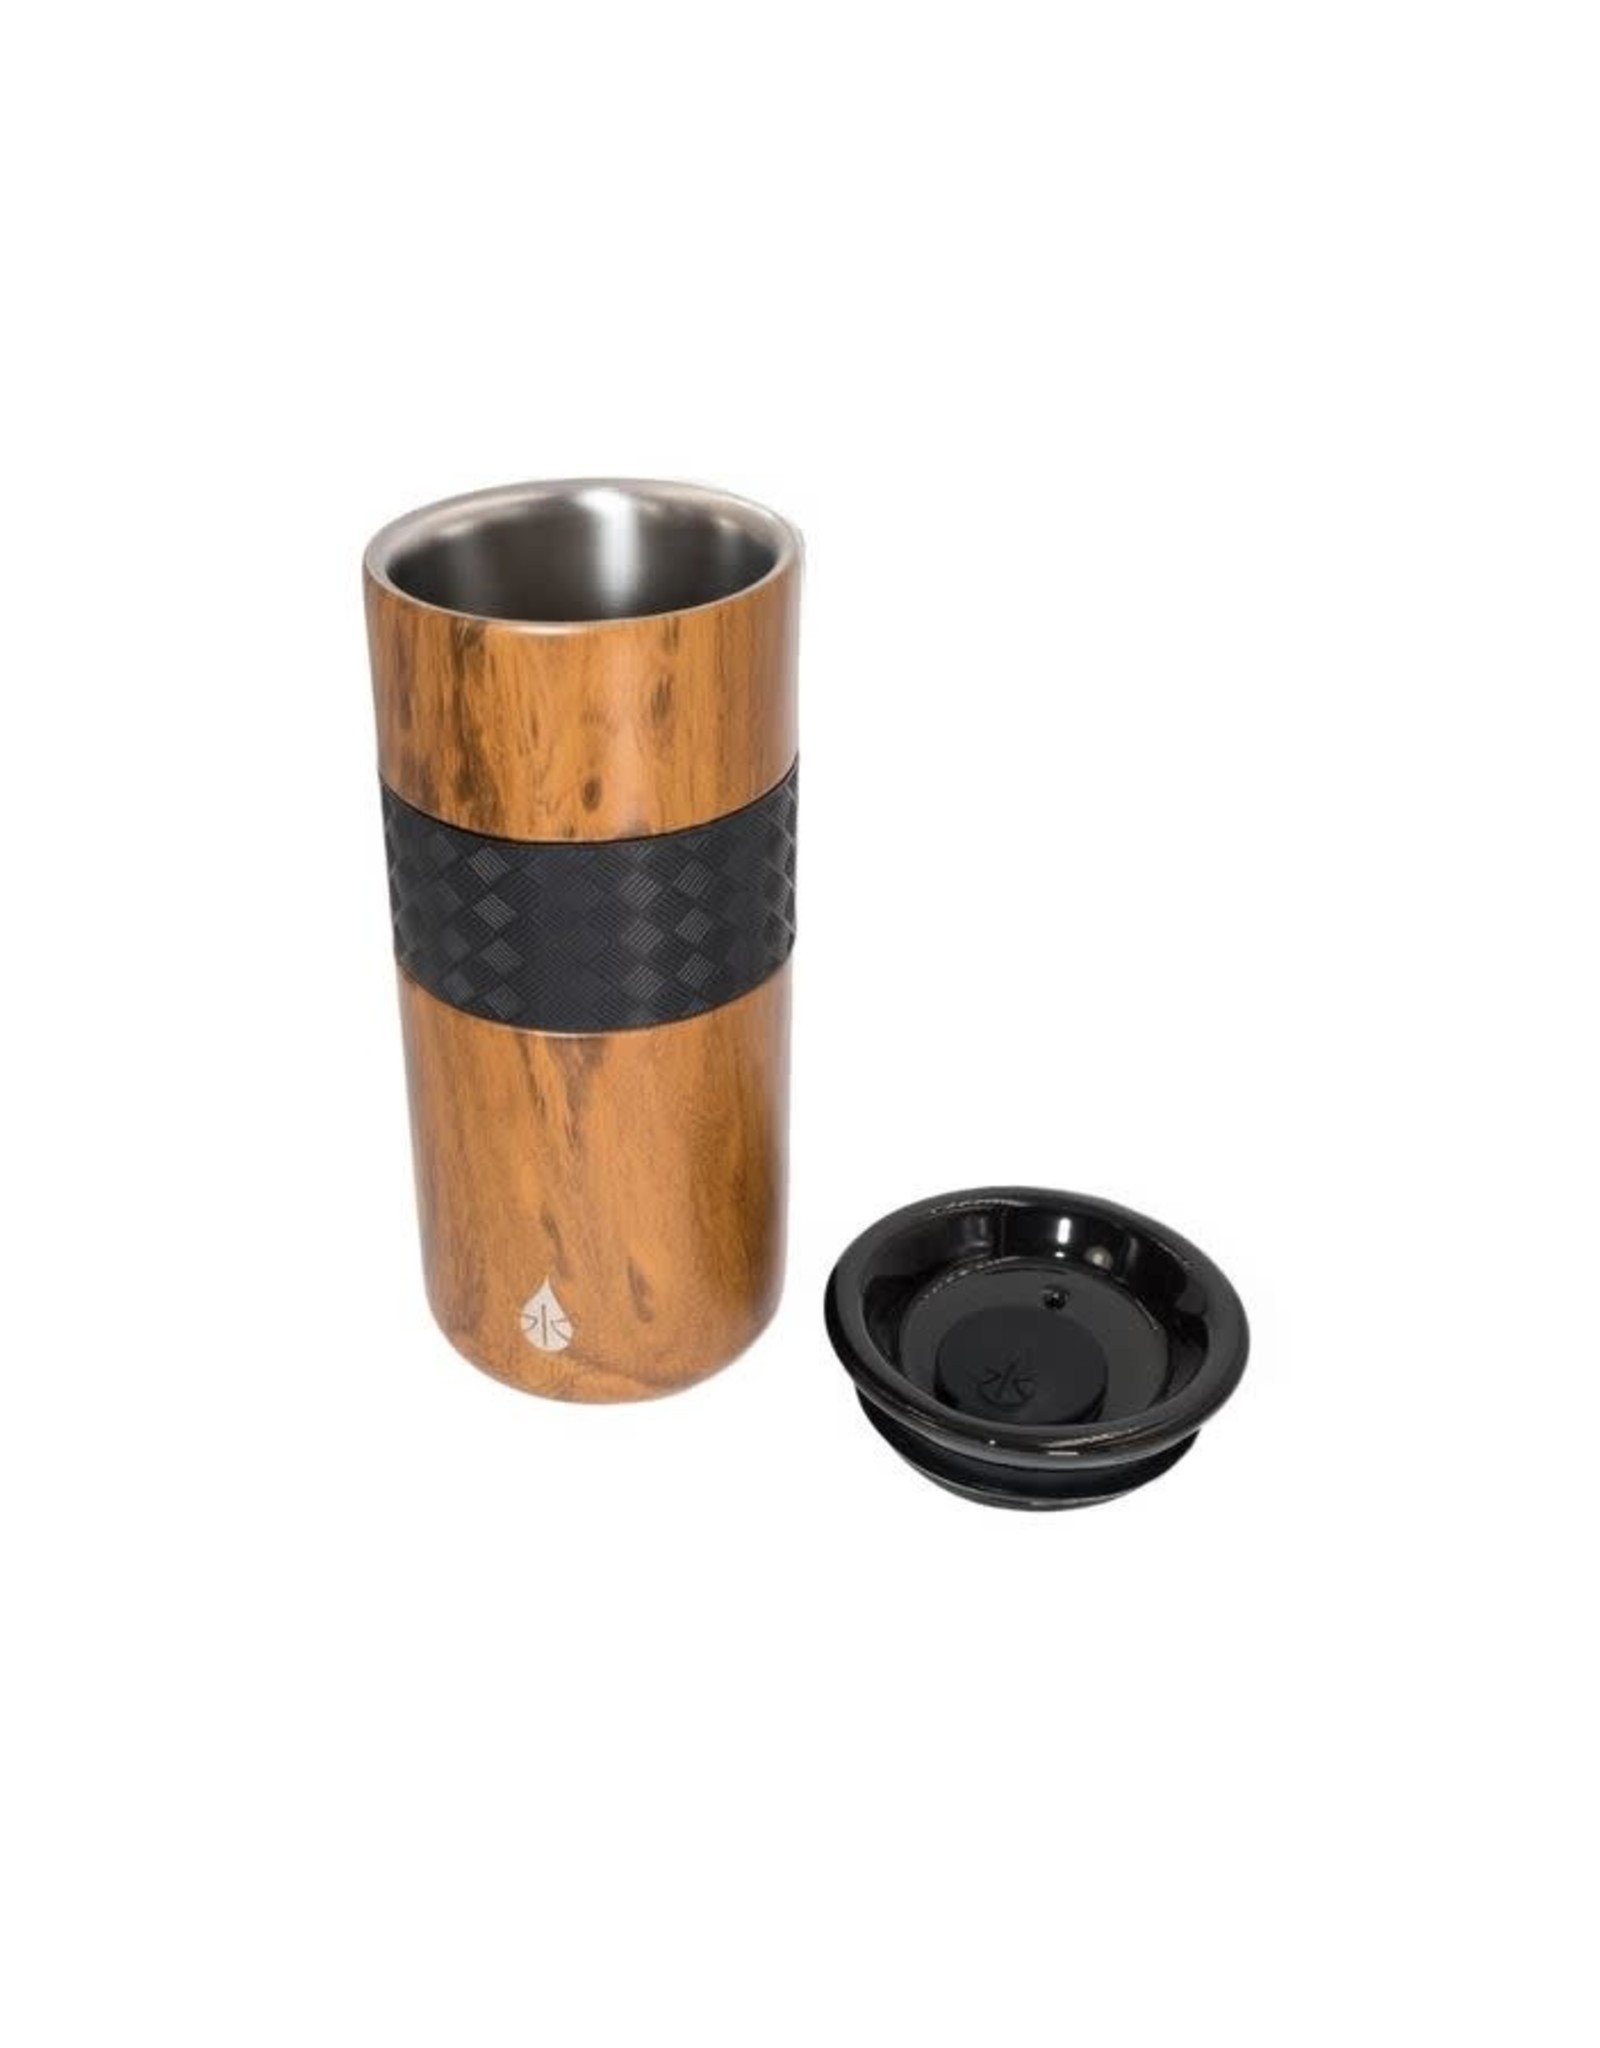 ELEMENTAL 16 OZ STAINLESS STEEL TUMBLER WITH CERAMIC LID